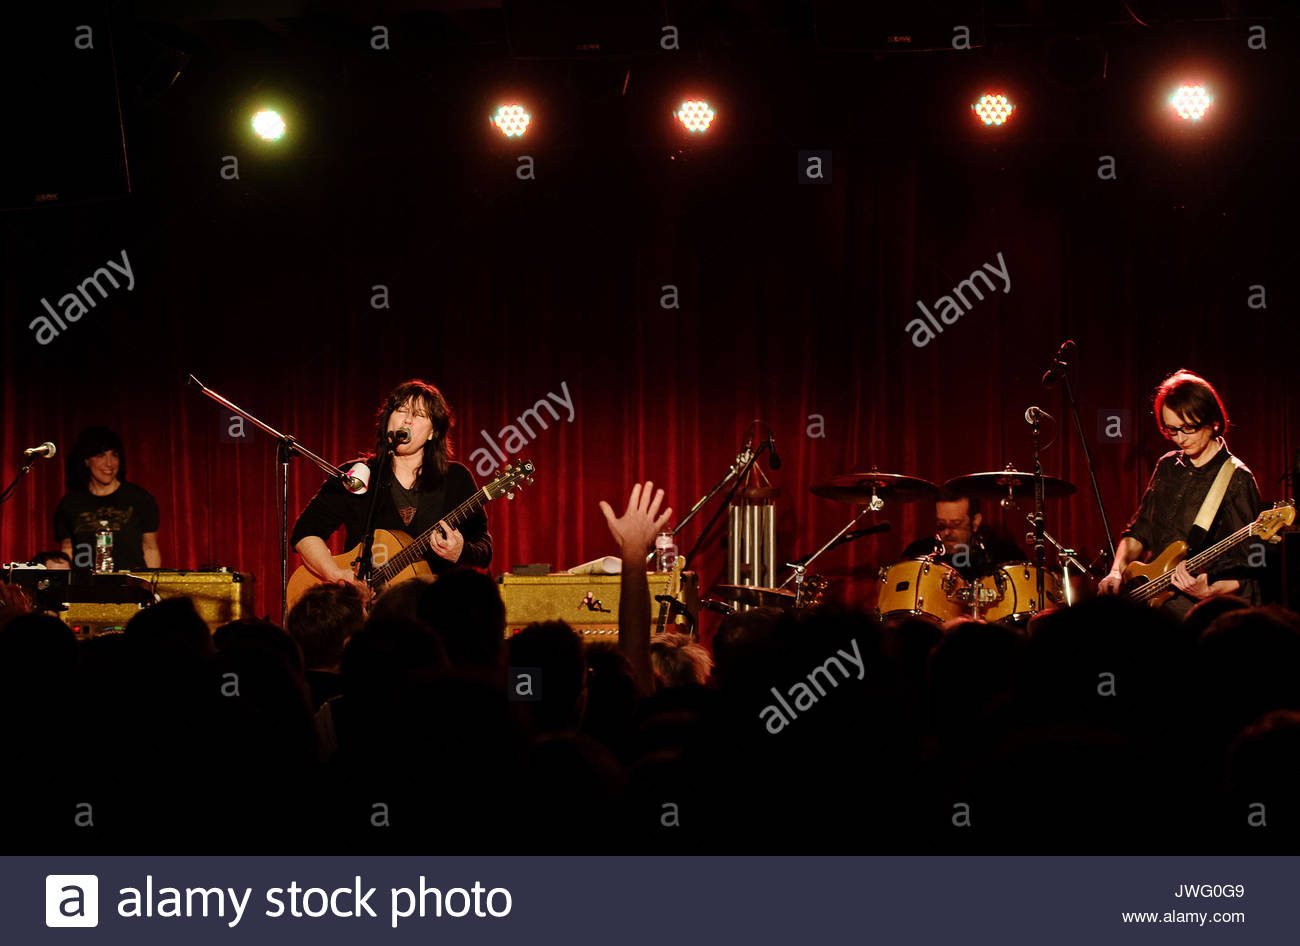 Kim Deal Of The Breeders Performs At The Bell House In The Brooklyn Borough  Of New York City.